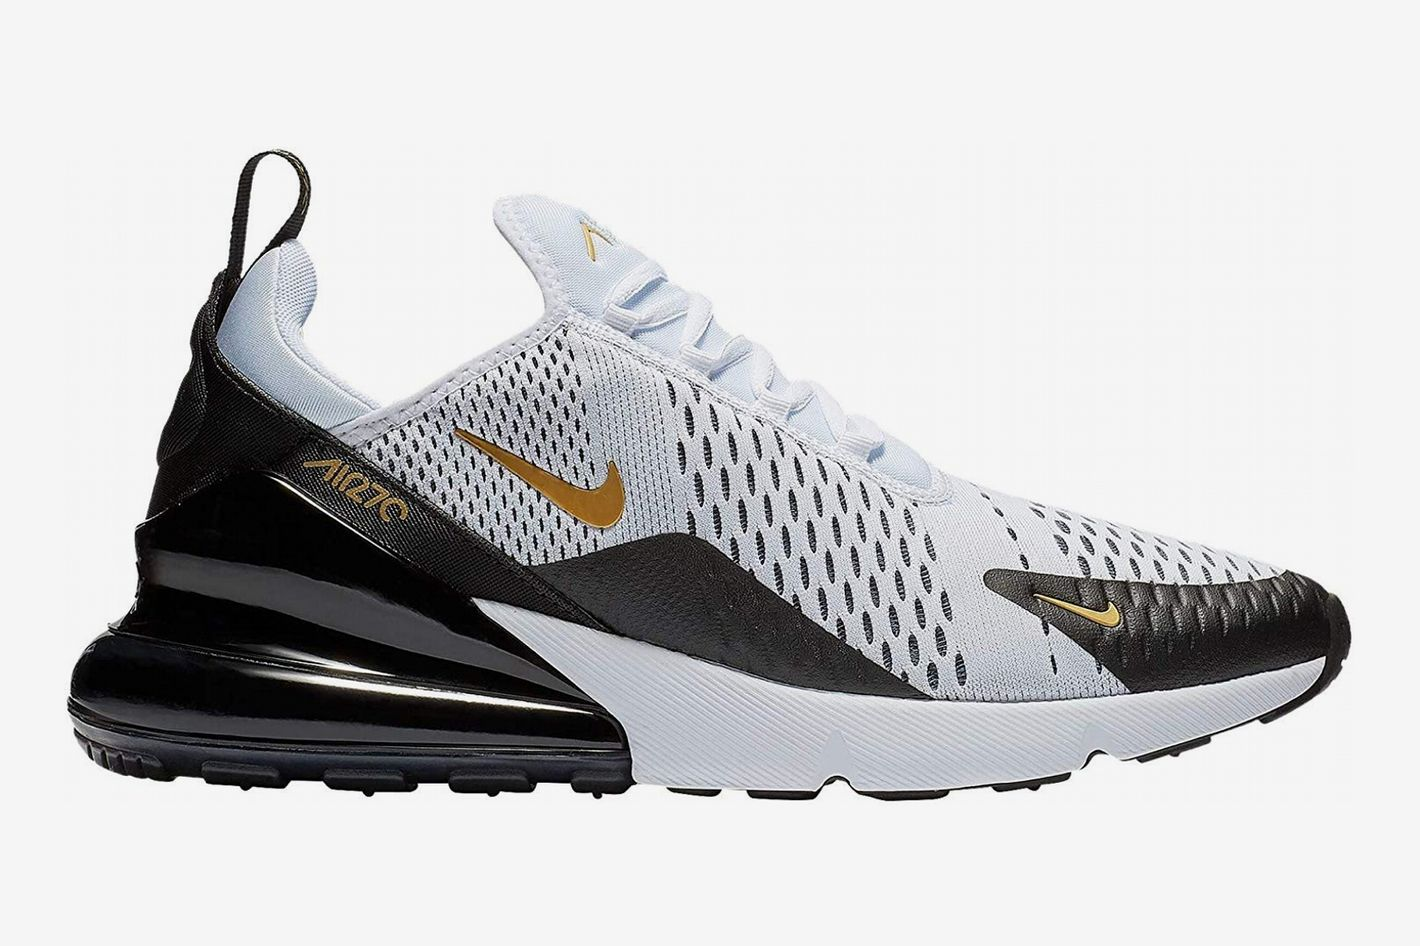 low cost b6740 4b2a8 NIKE Air Max 270 at Amazon